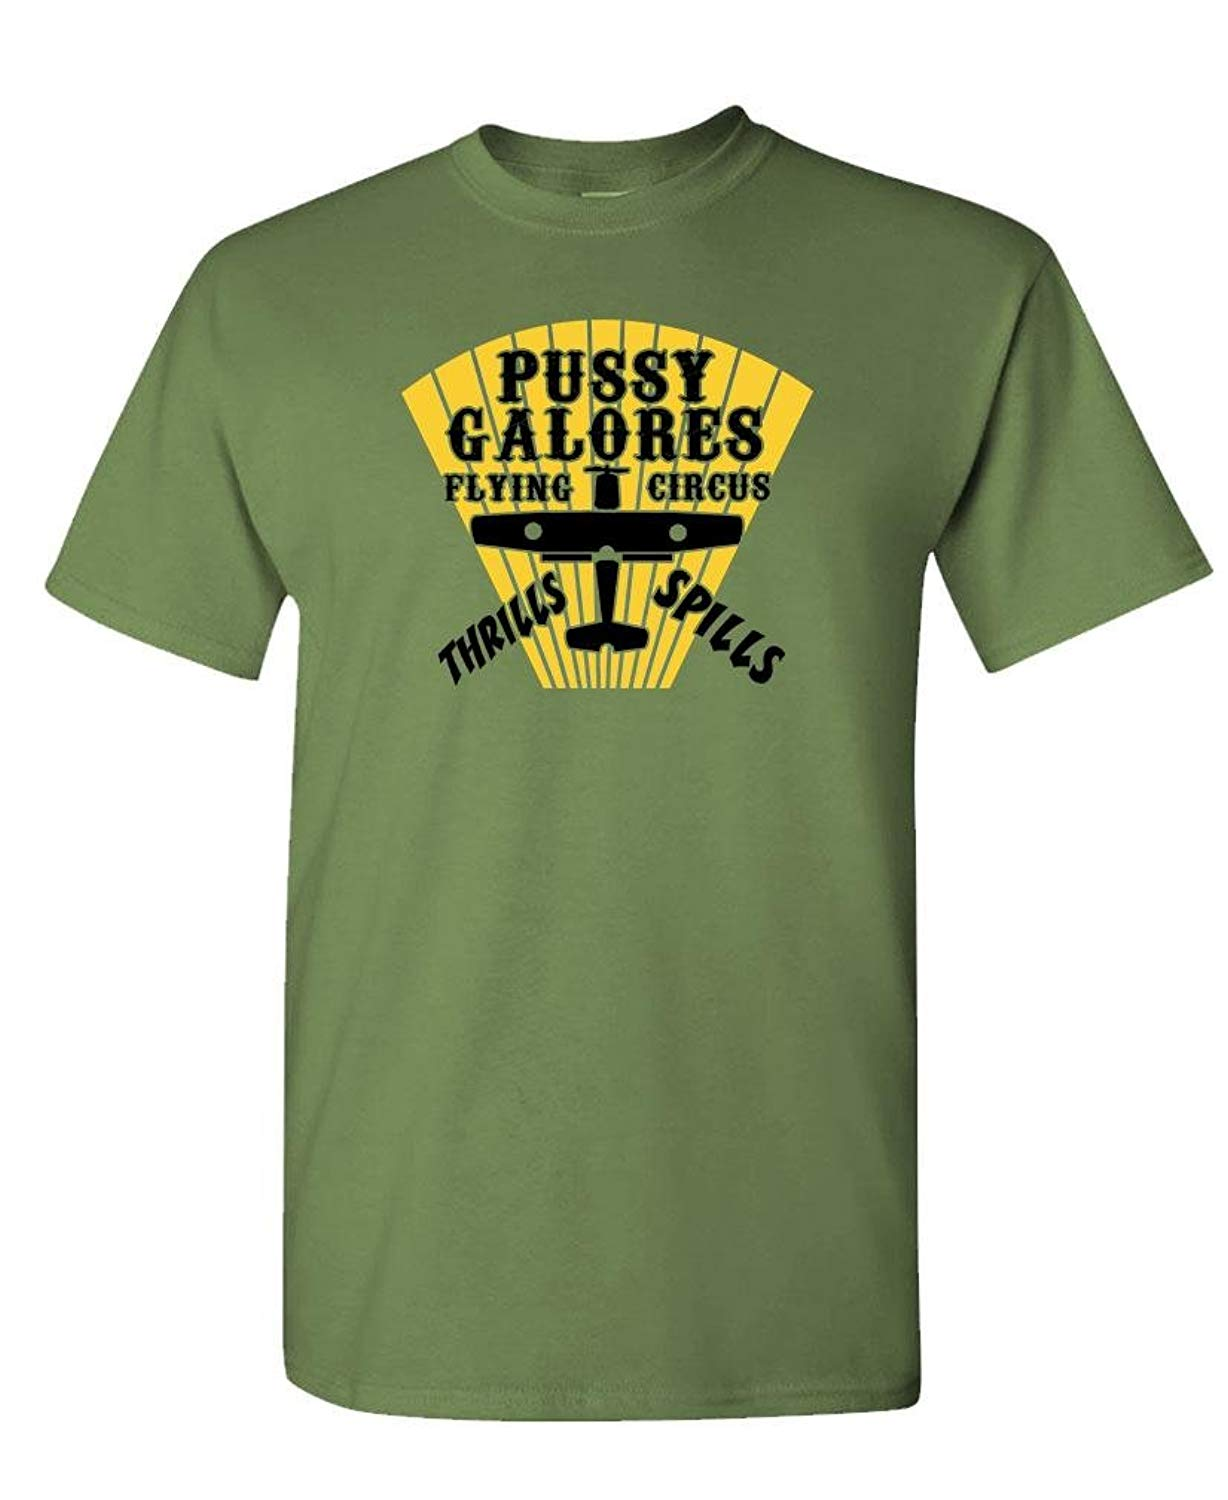 Pussy Galores Flying Circus Spy Movie S T Shirt